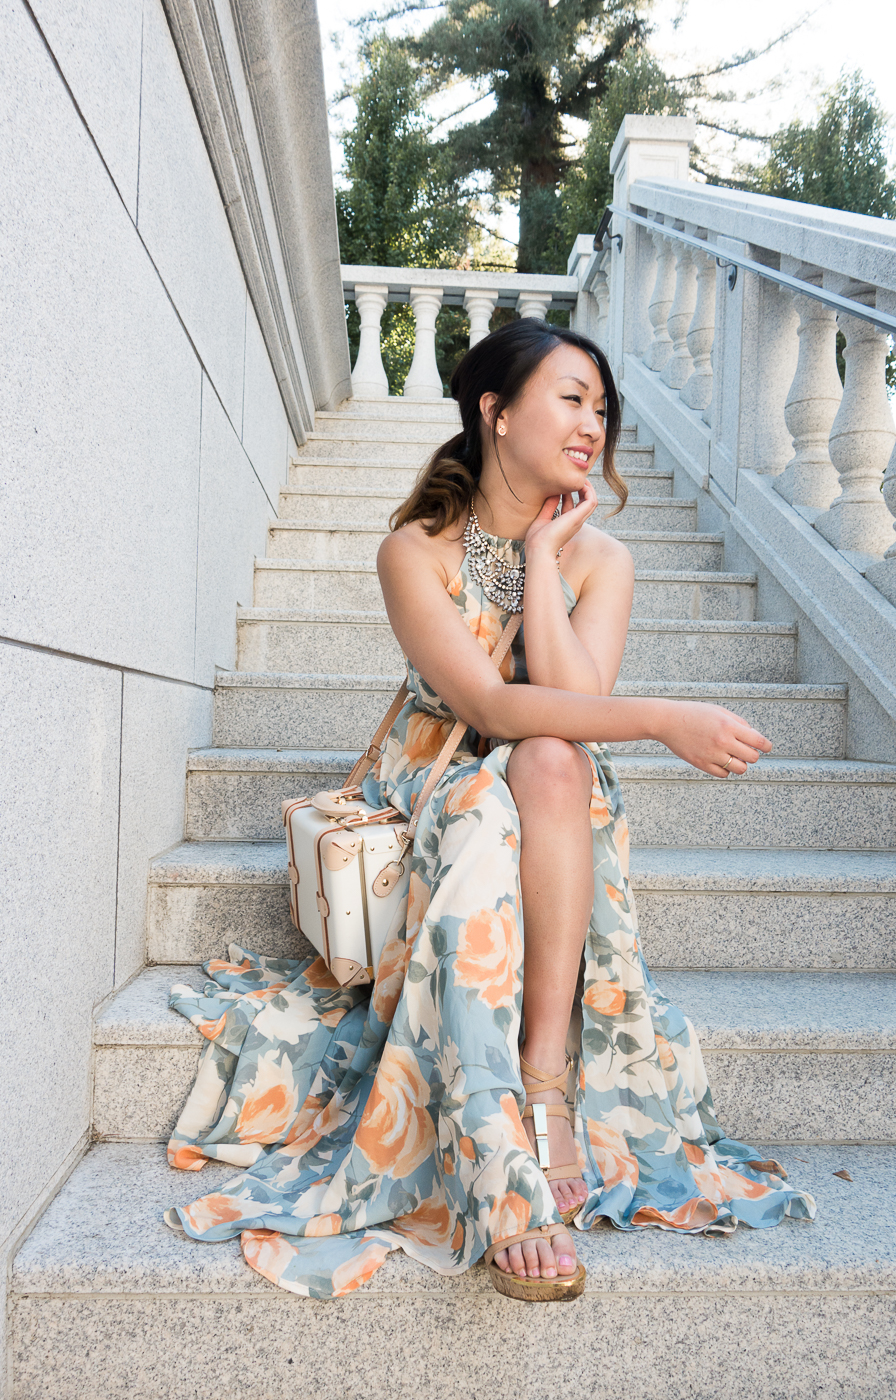 Lulu's Floral Maxi Dress & Steamline Luggage Sweetheart Collection Vanity Bag | The Chic Diary